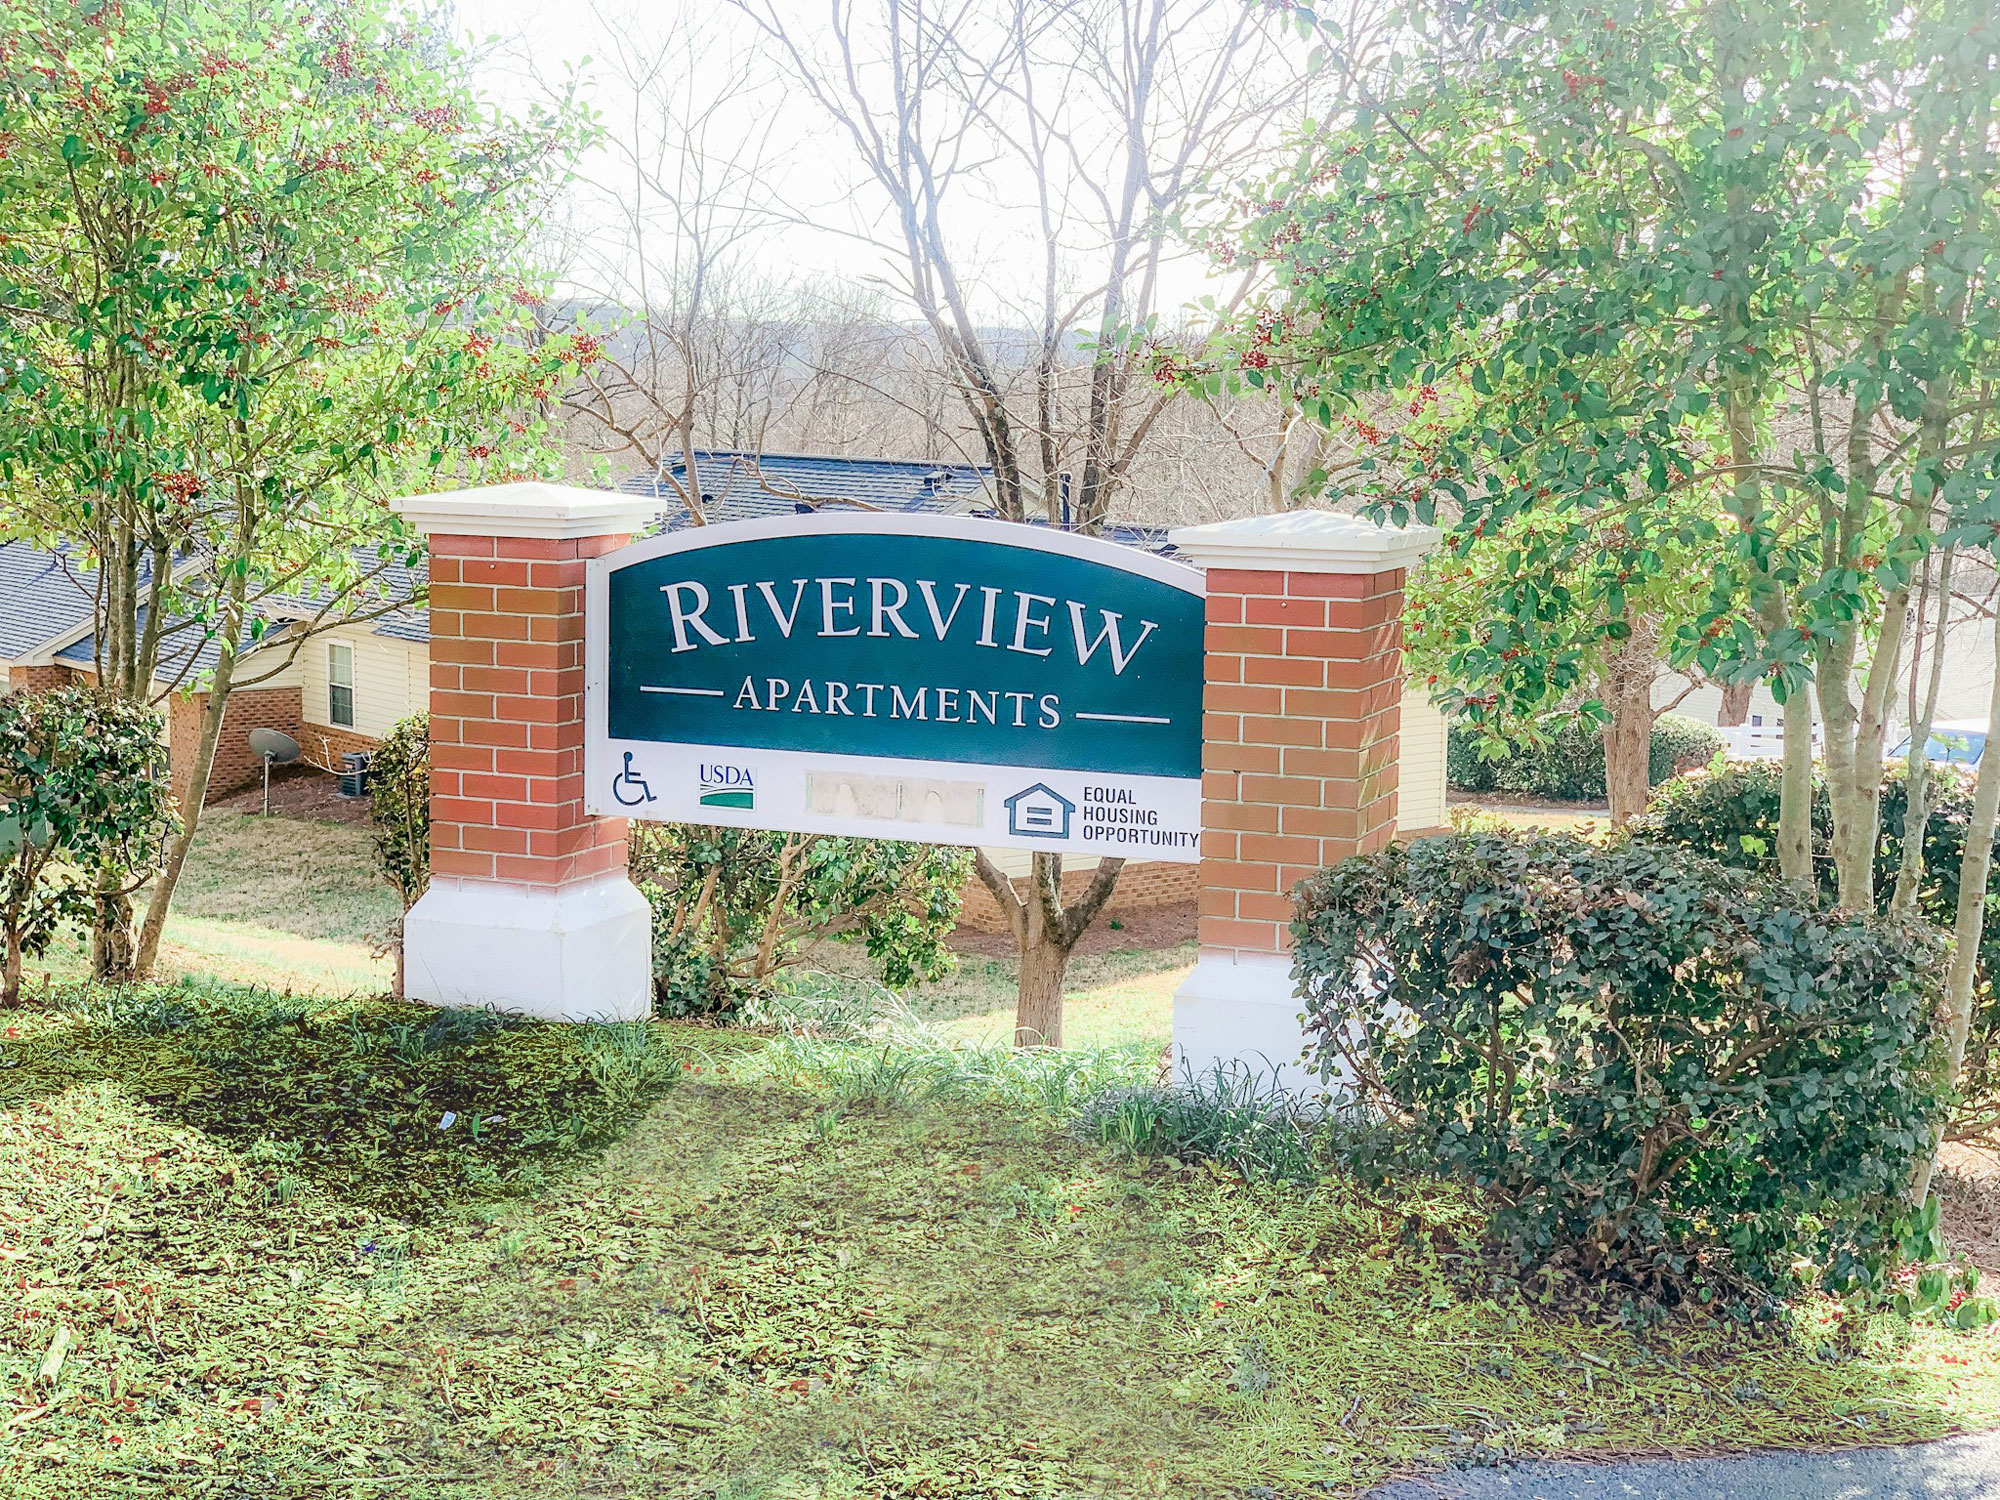 Riverview Apartments Eden, North Carolina